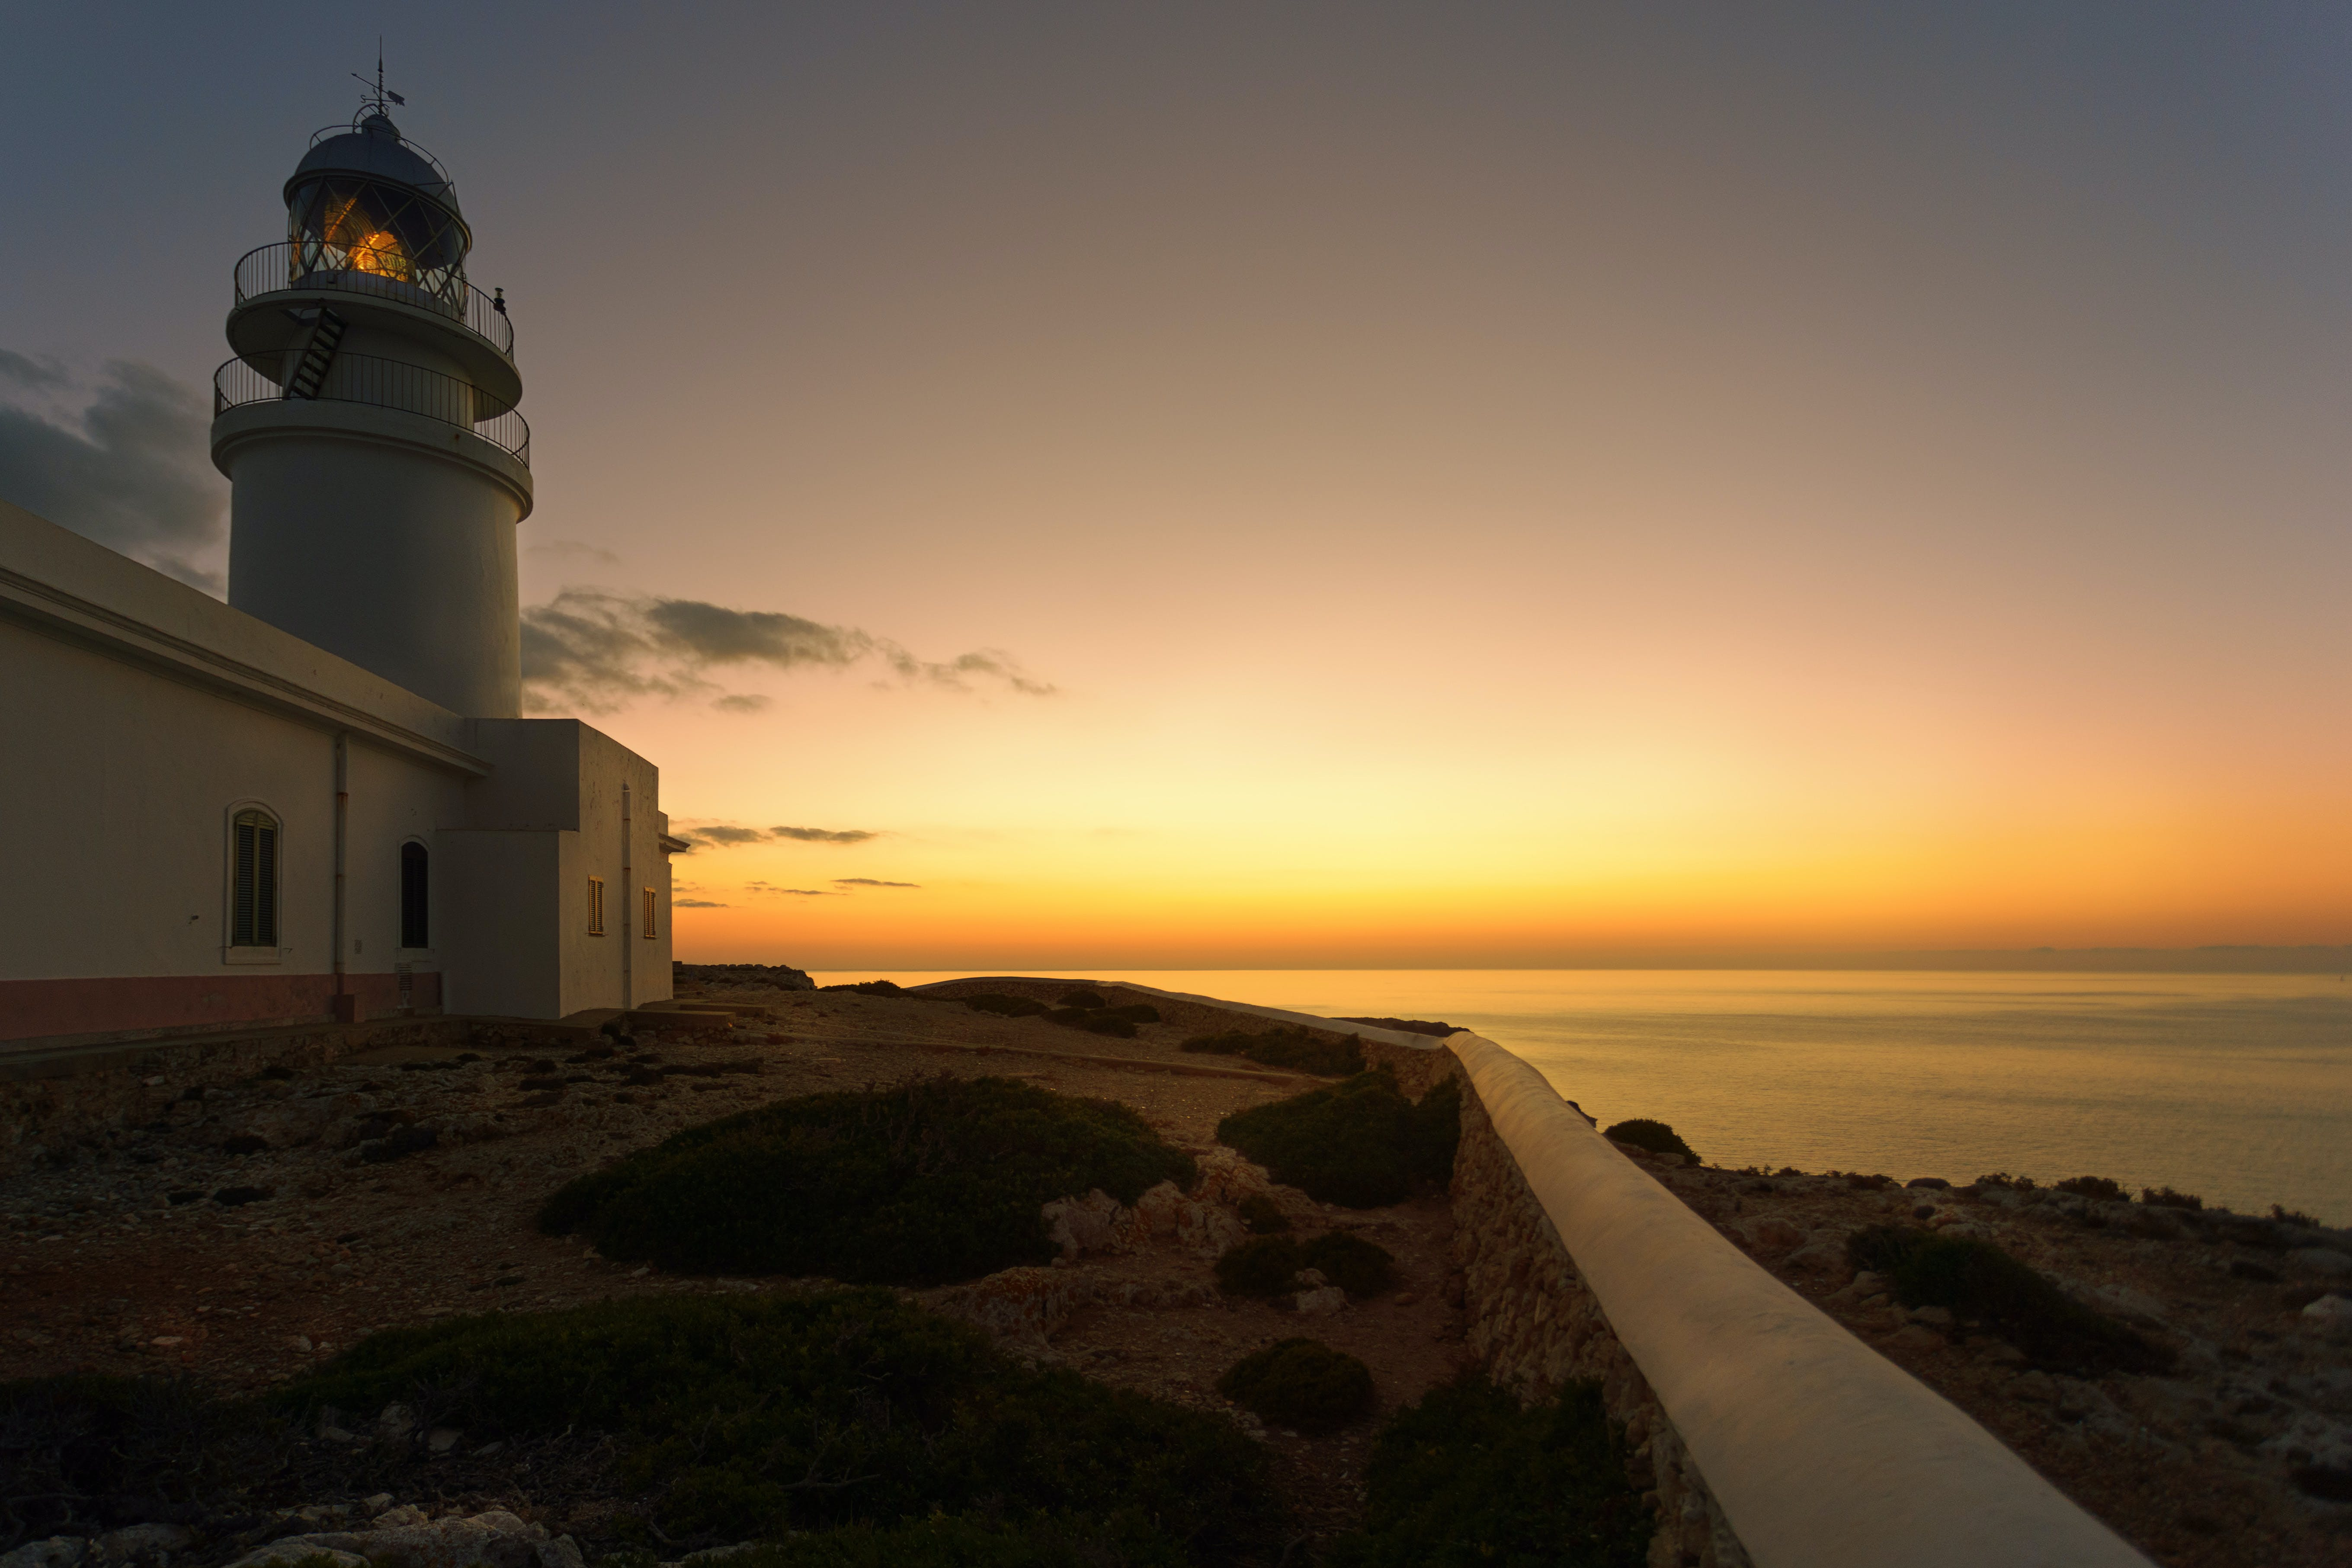 White Concrete Lighthouse during Golden Hour